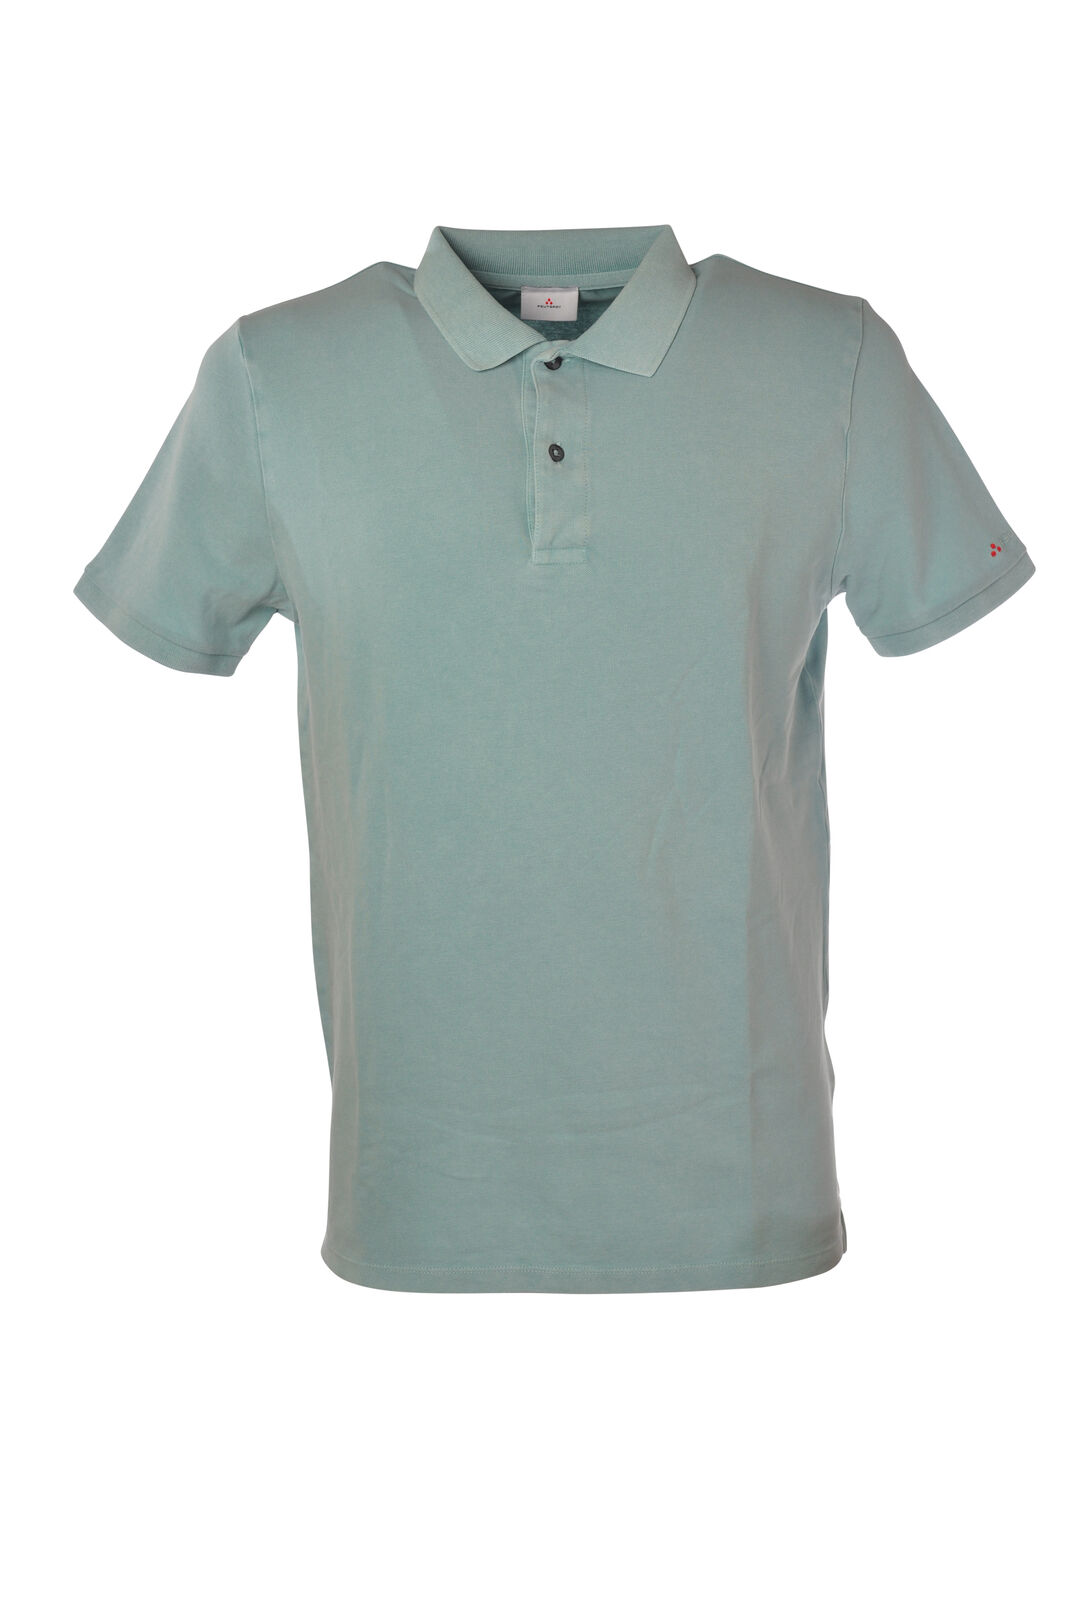 Peuterey - Topwear-Polo - Man - Green - 5323308F184913